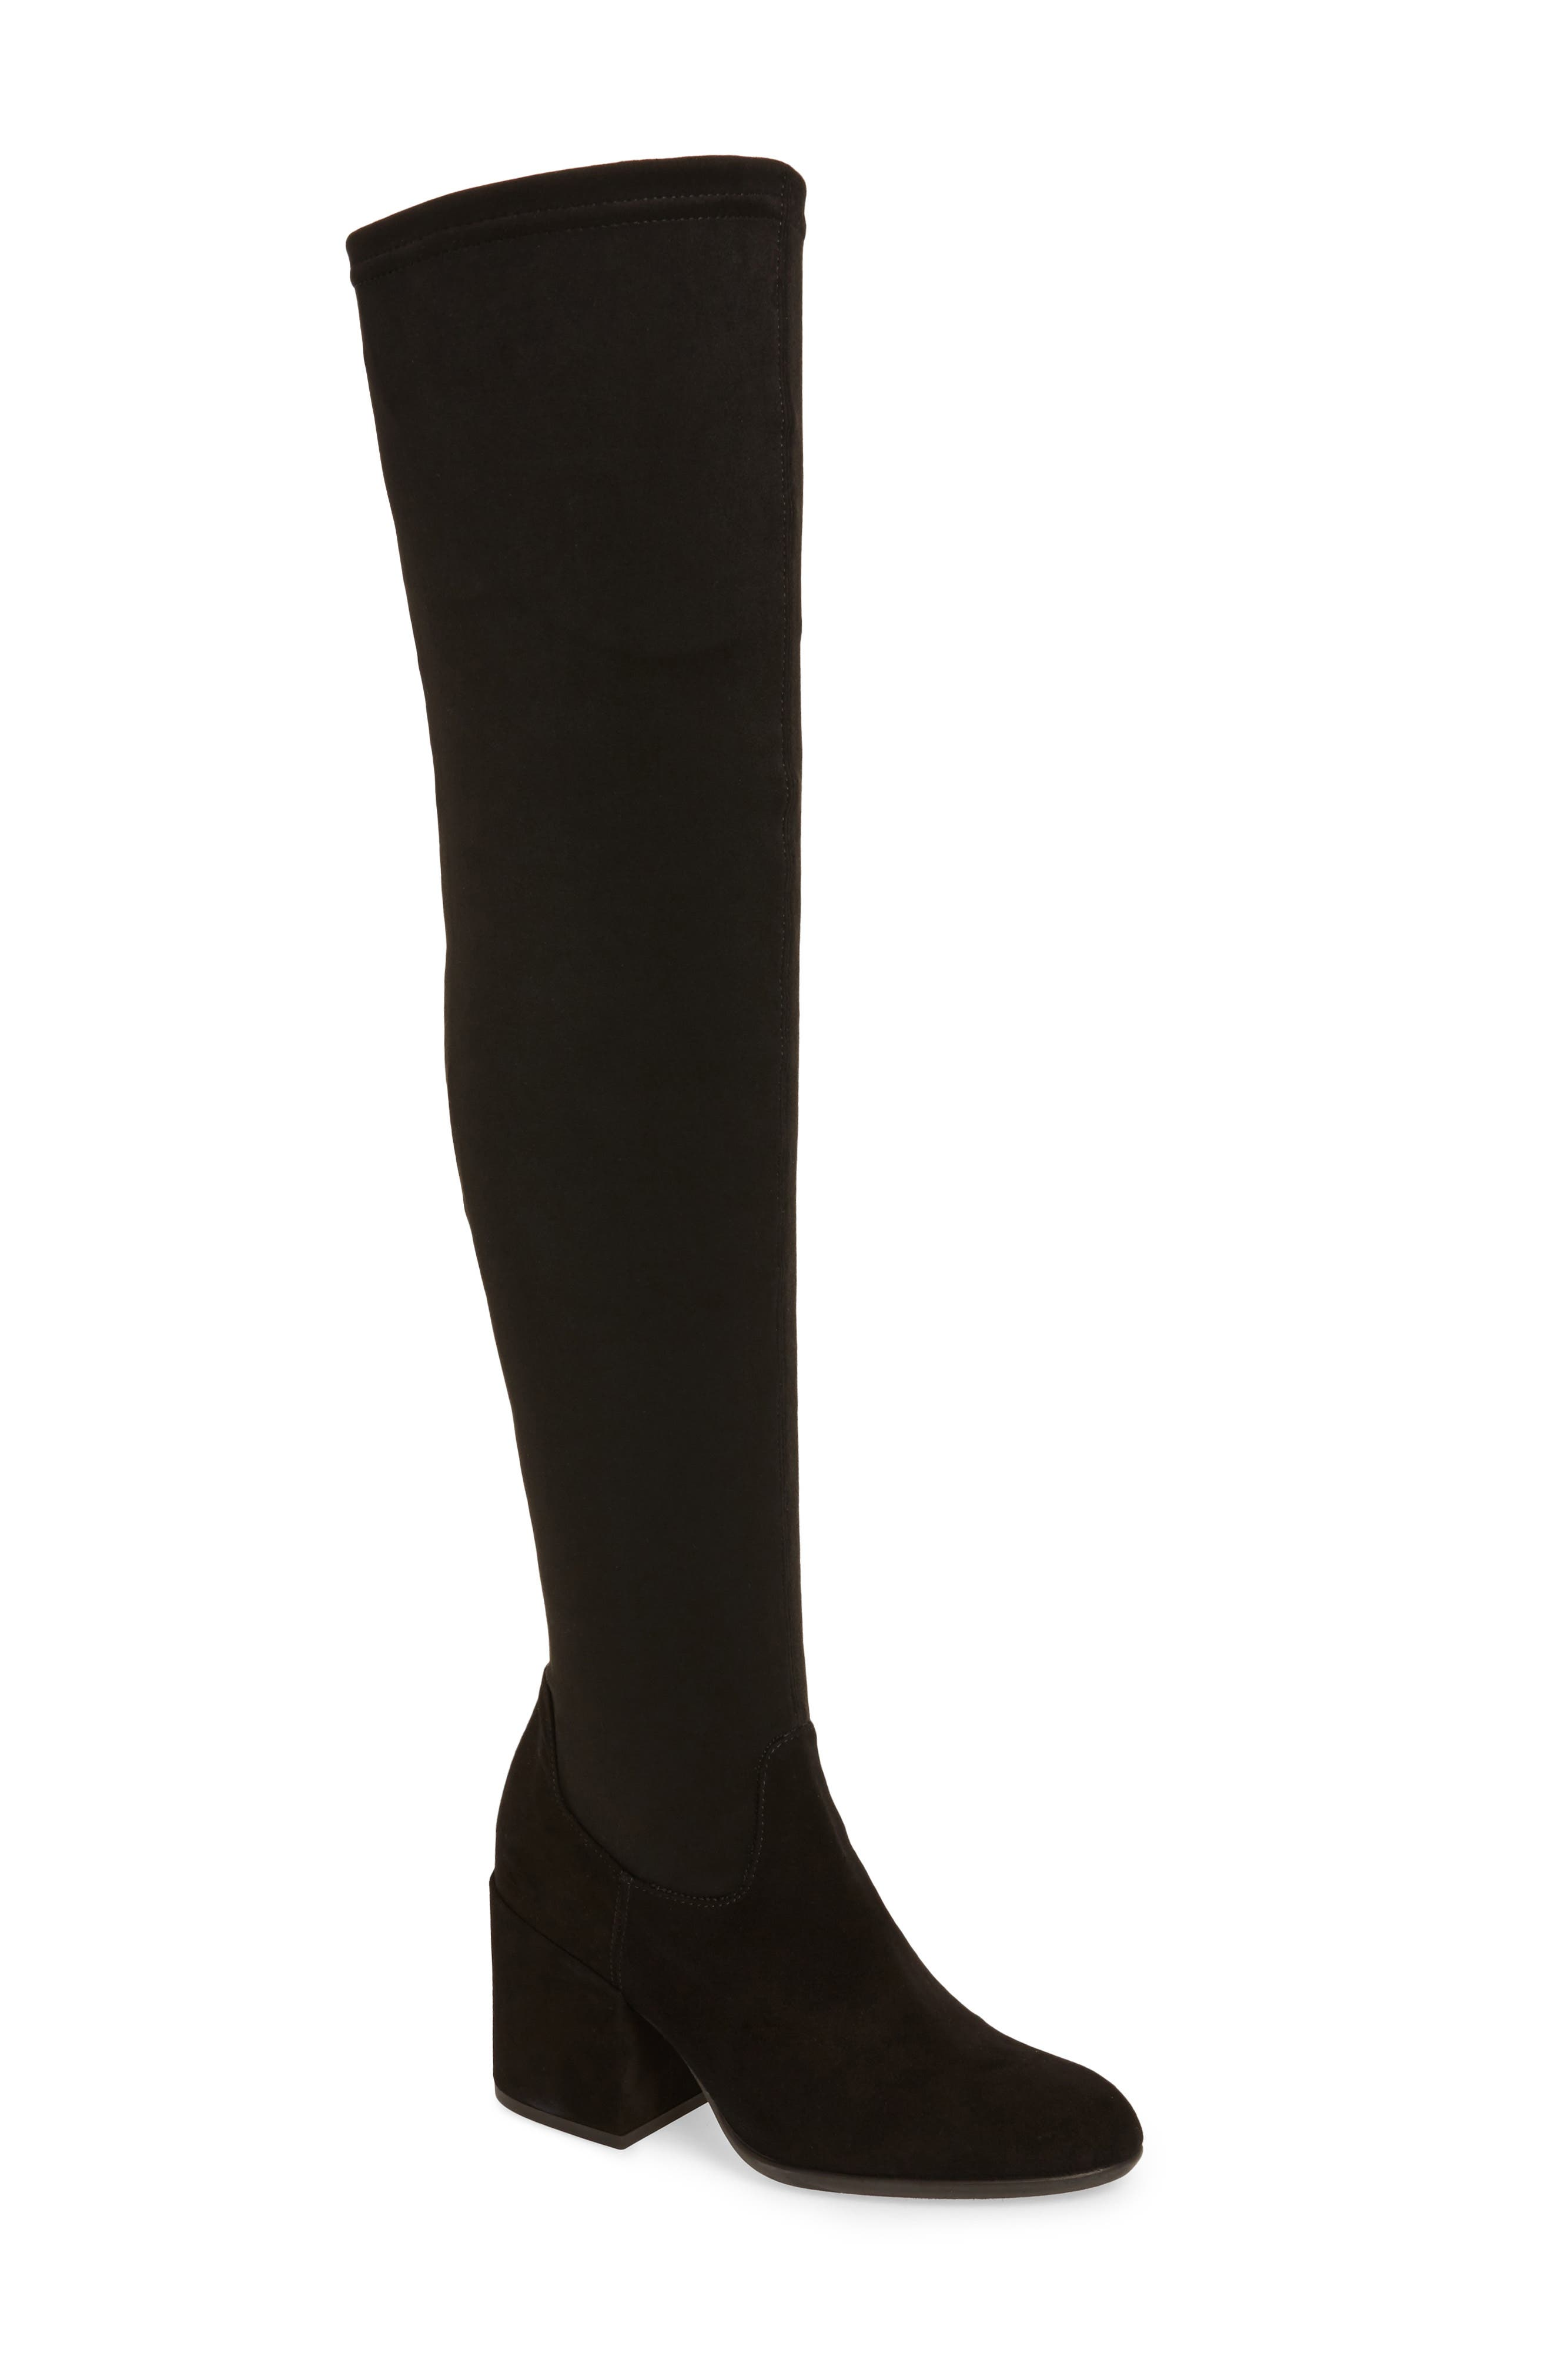 Verve Over the Knee Boot,                         Main,                         color, 001